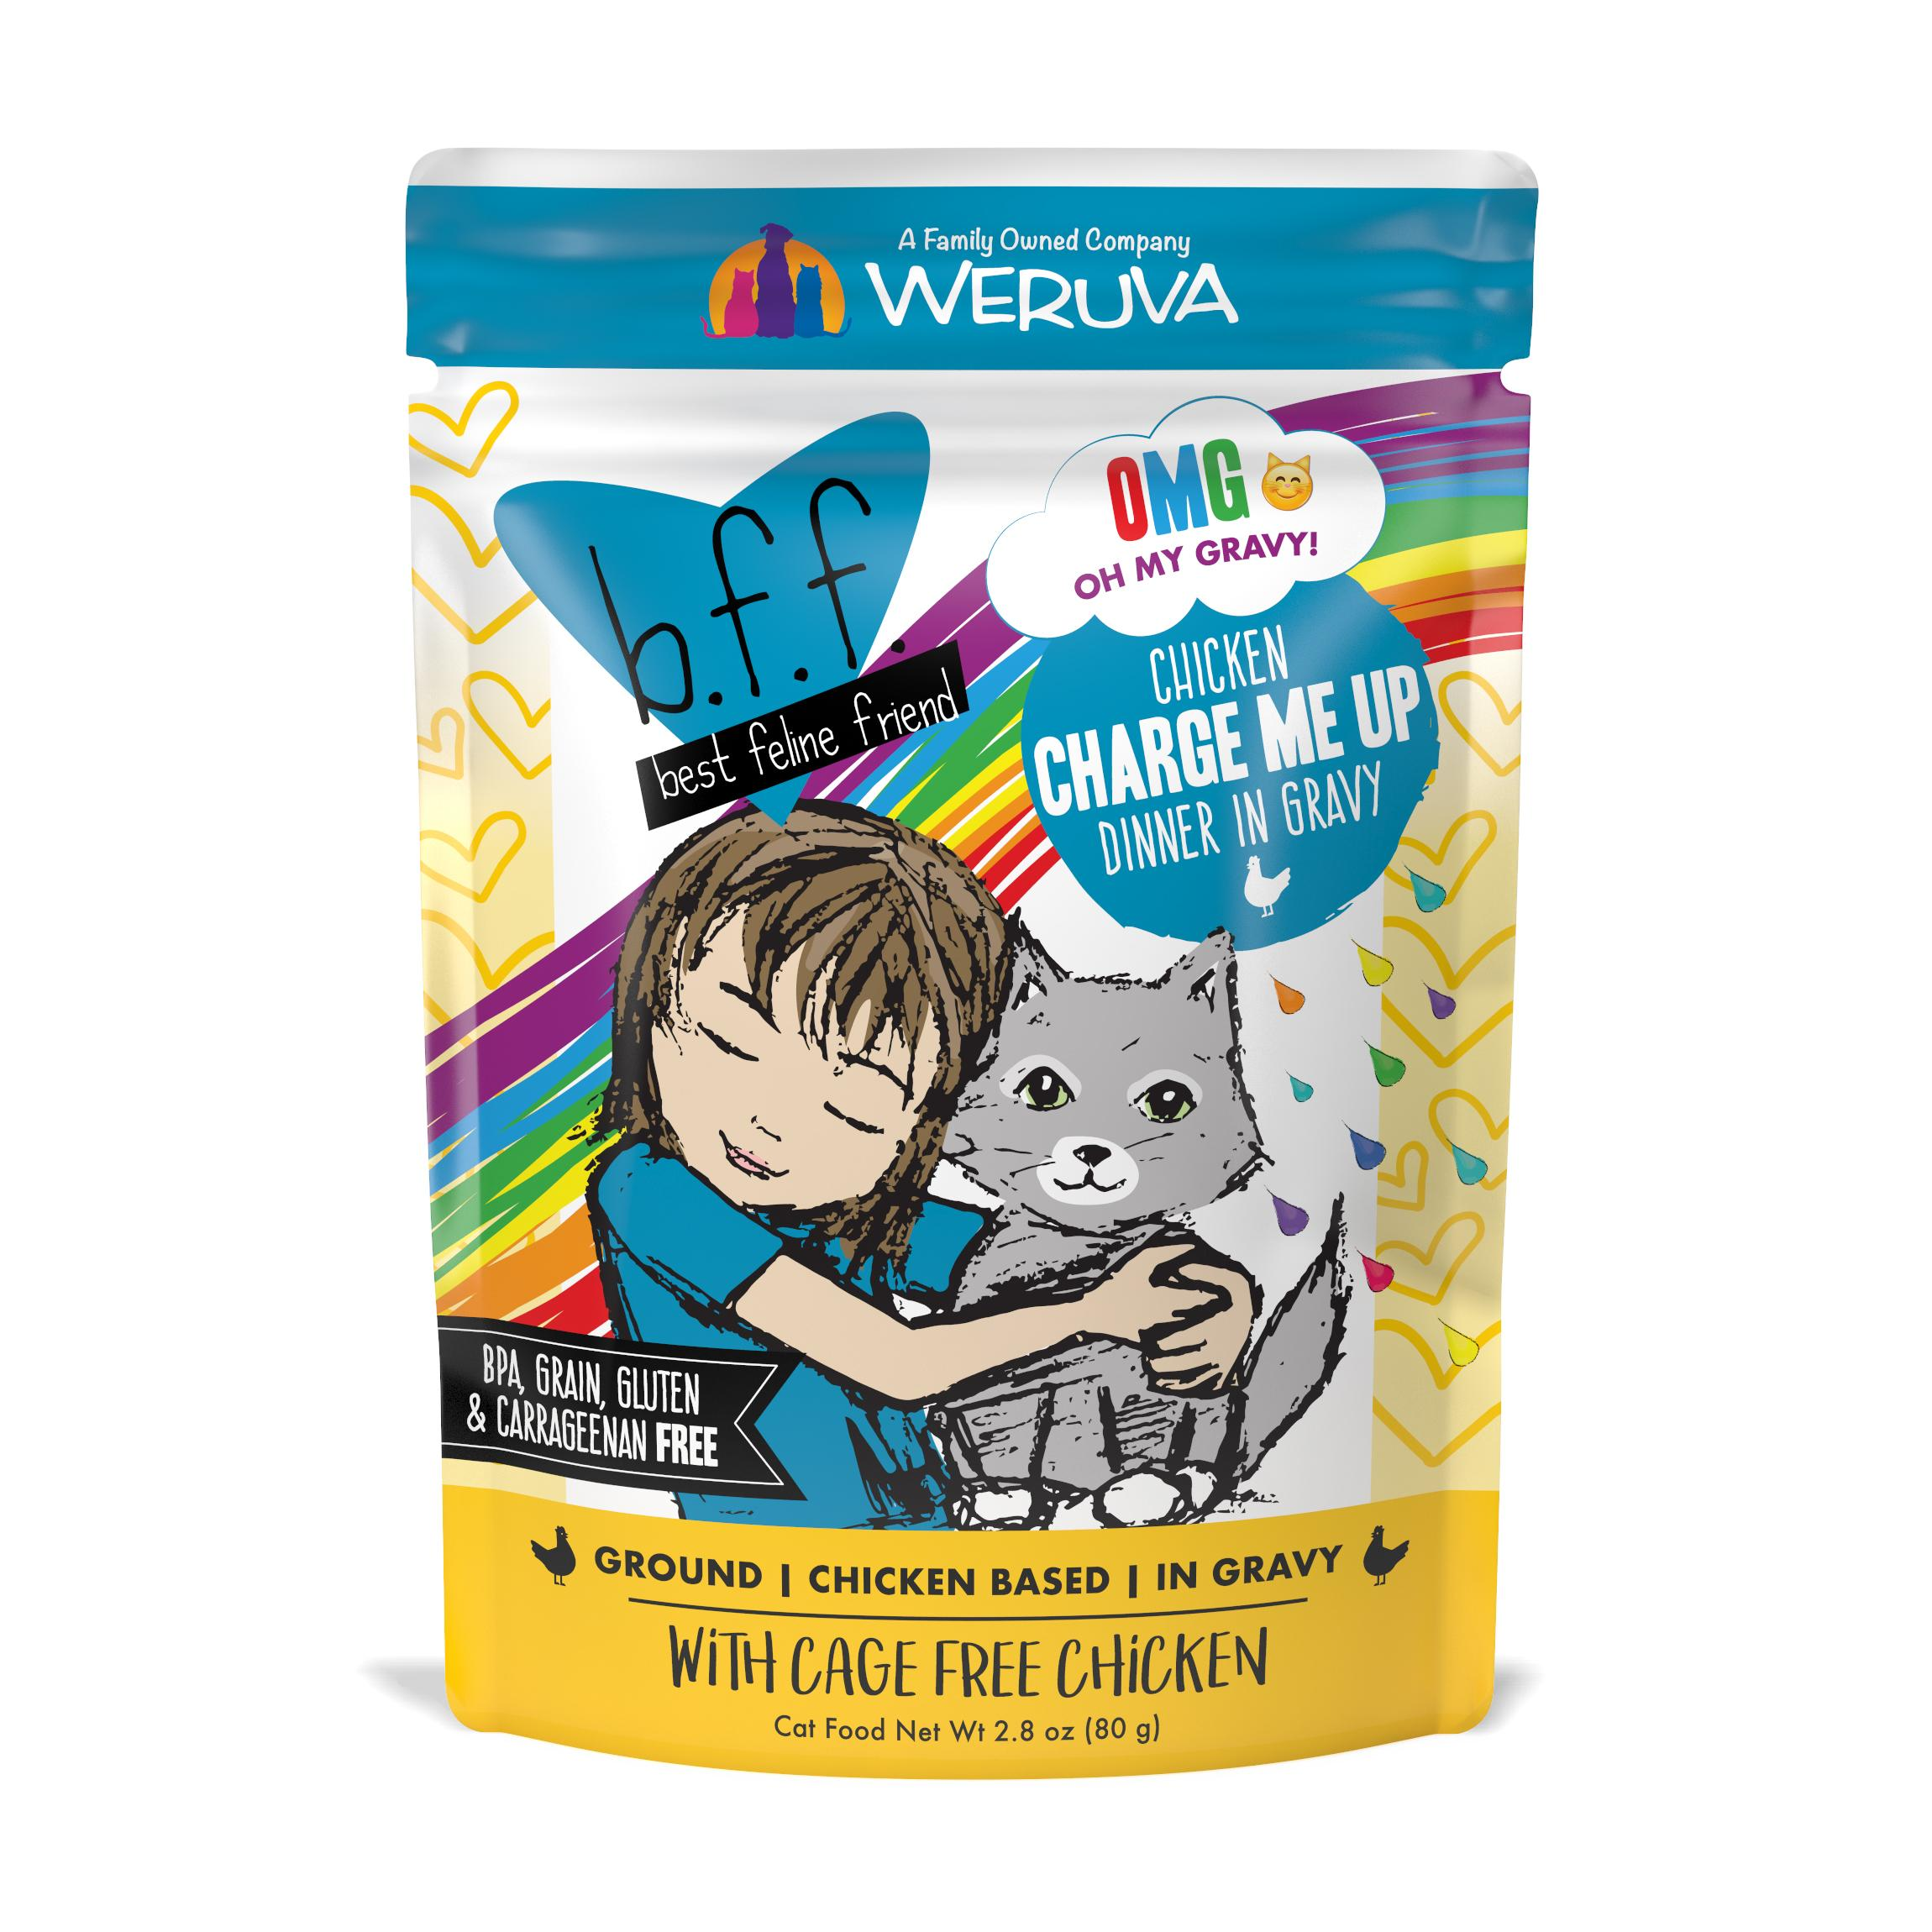 BFF Oh My Gravy! Charge Me Up! Chicken Dinner in Gravy Grain-Free Wet Cat Food, 2.8-oz pouch